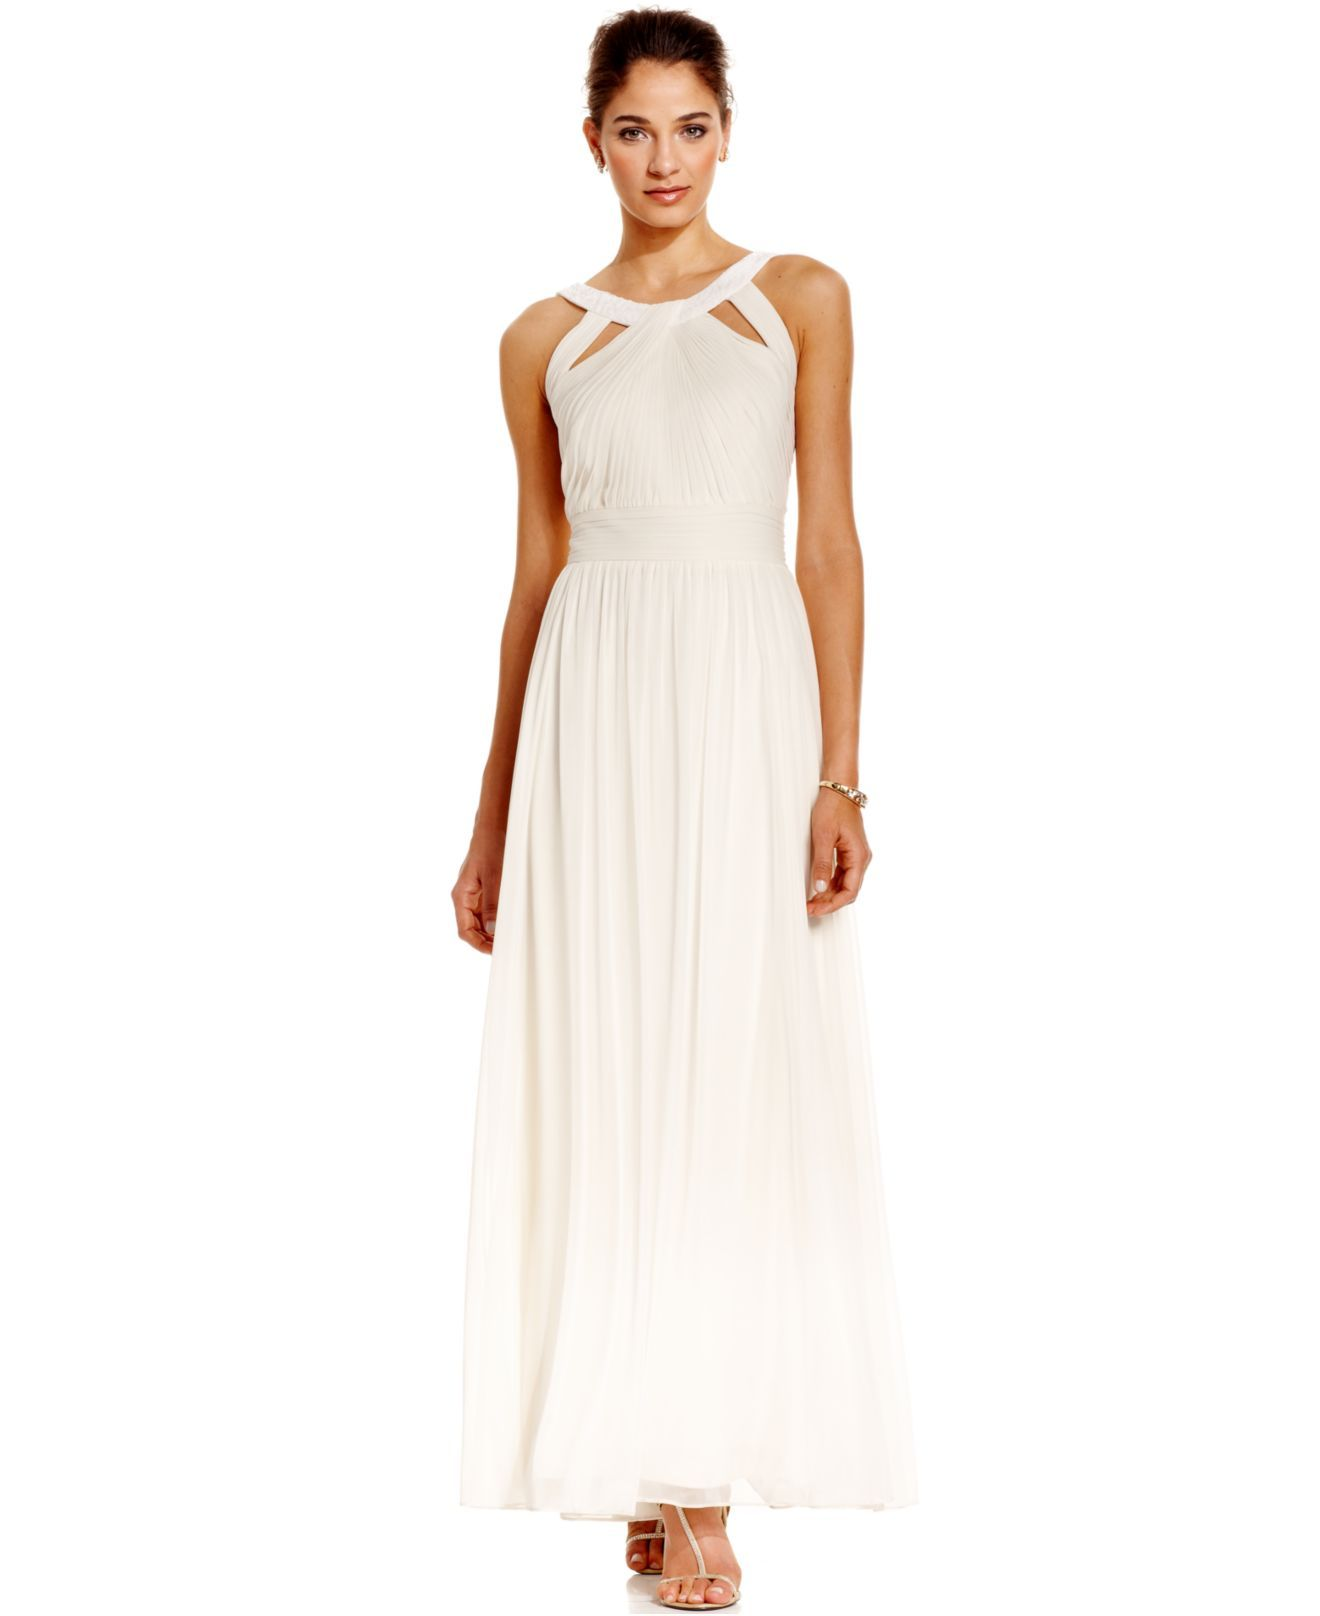 Alex evenings dress sleeveless pleated evening gown womens